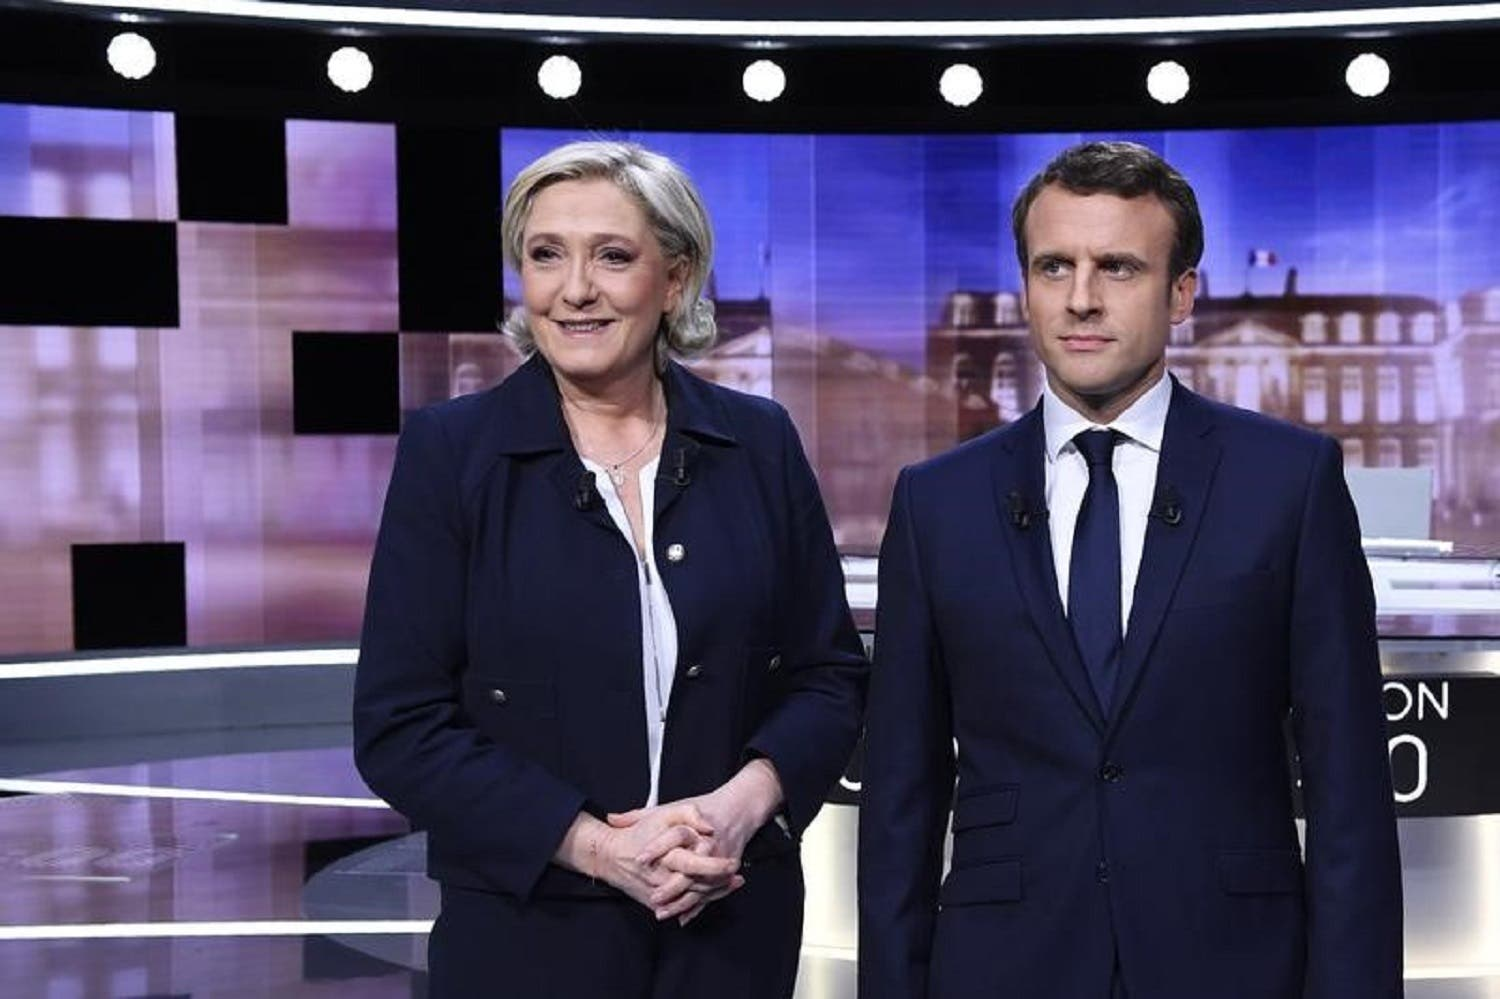 French presidential candidate Emmanuel Macron and far-right candidate Marine Le Pen before the start of a television debate in Paris on May 3, 2017. (Reuters)